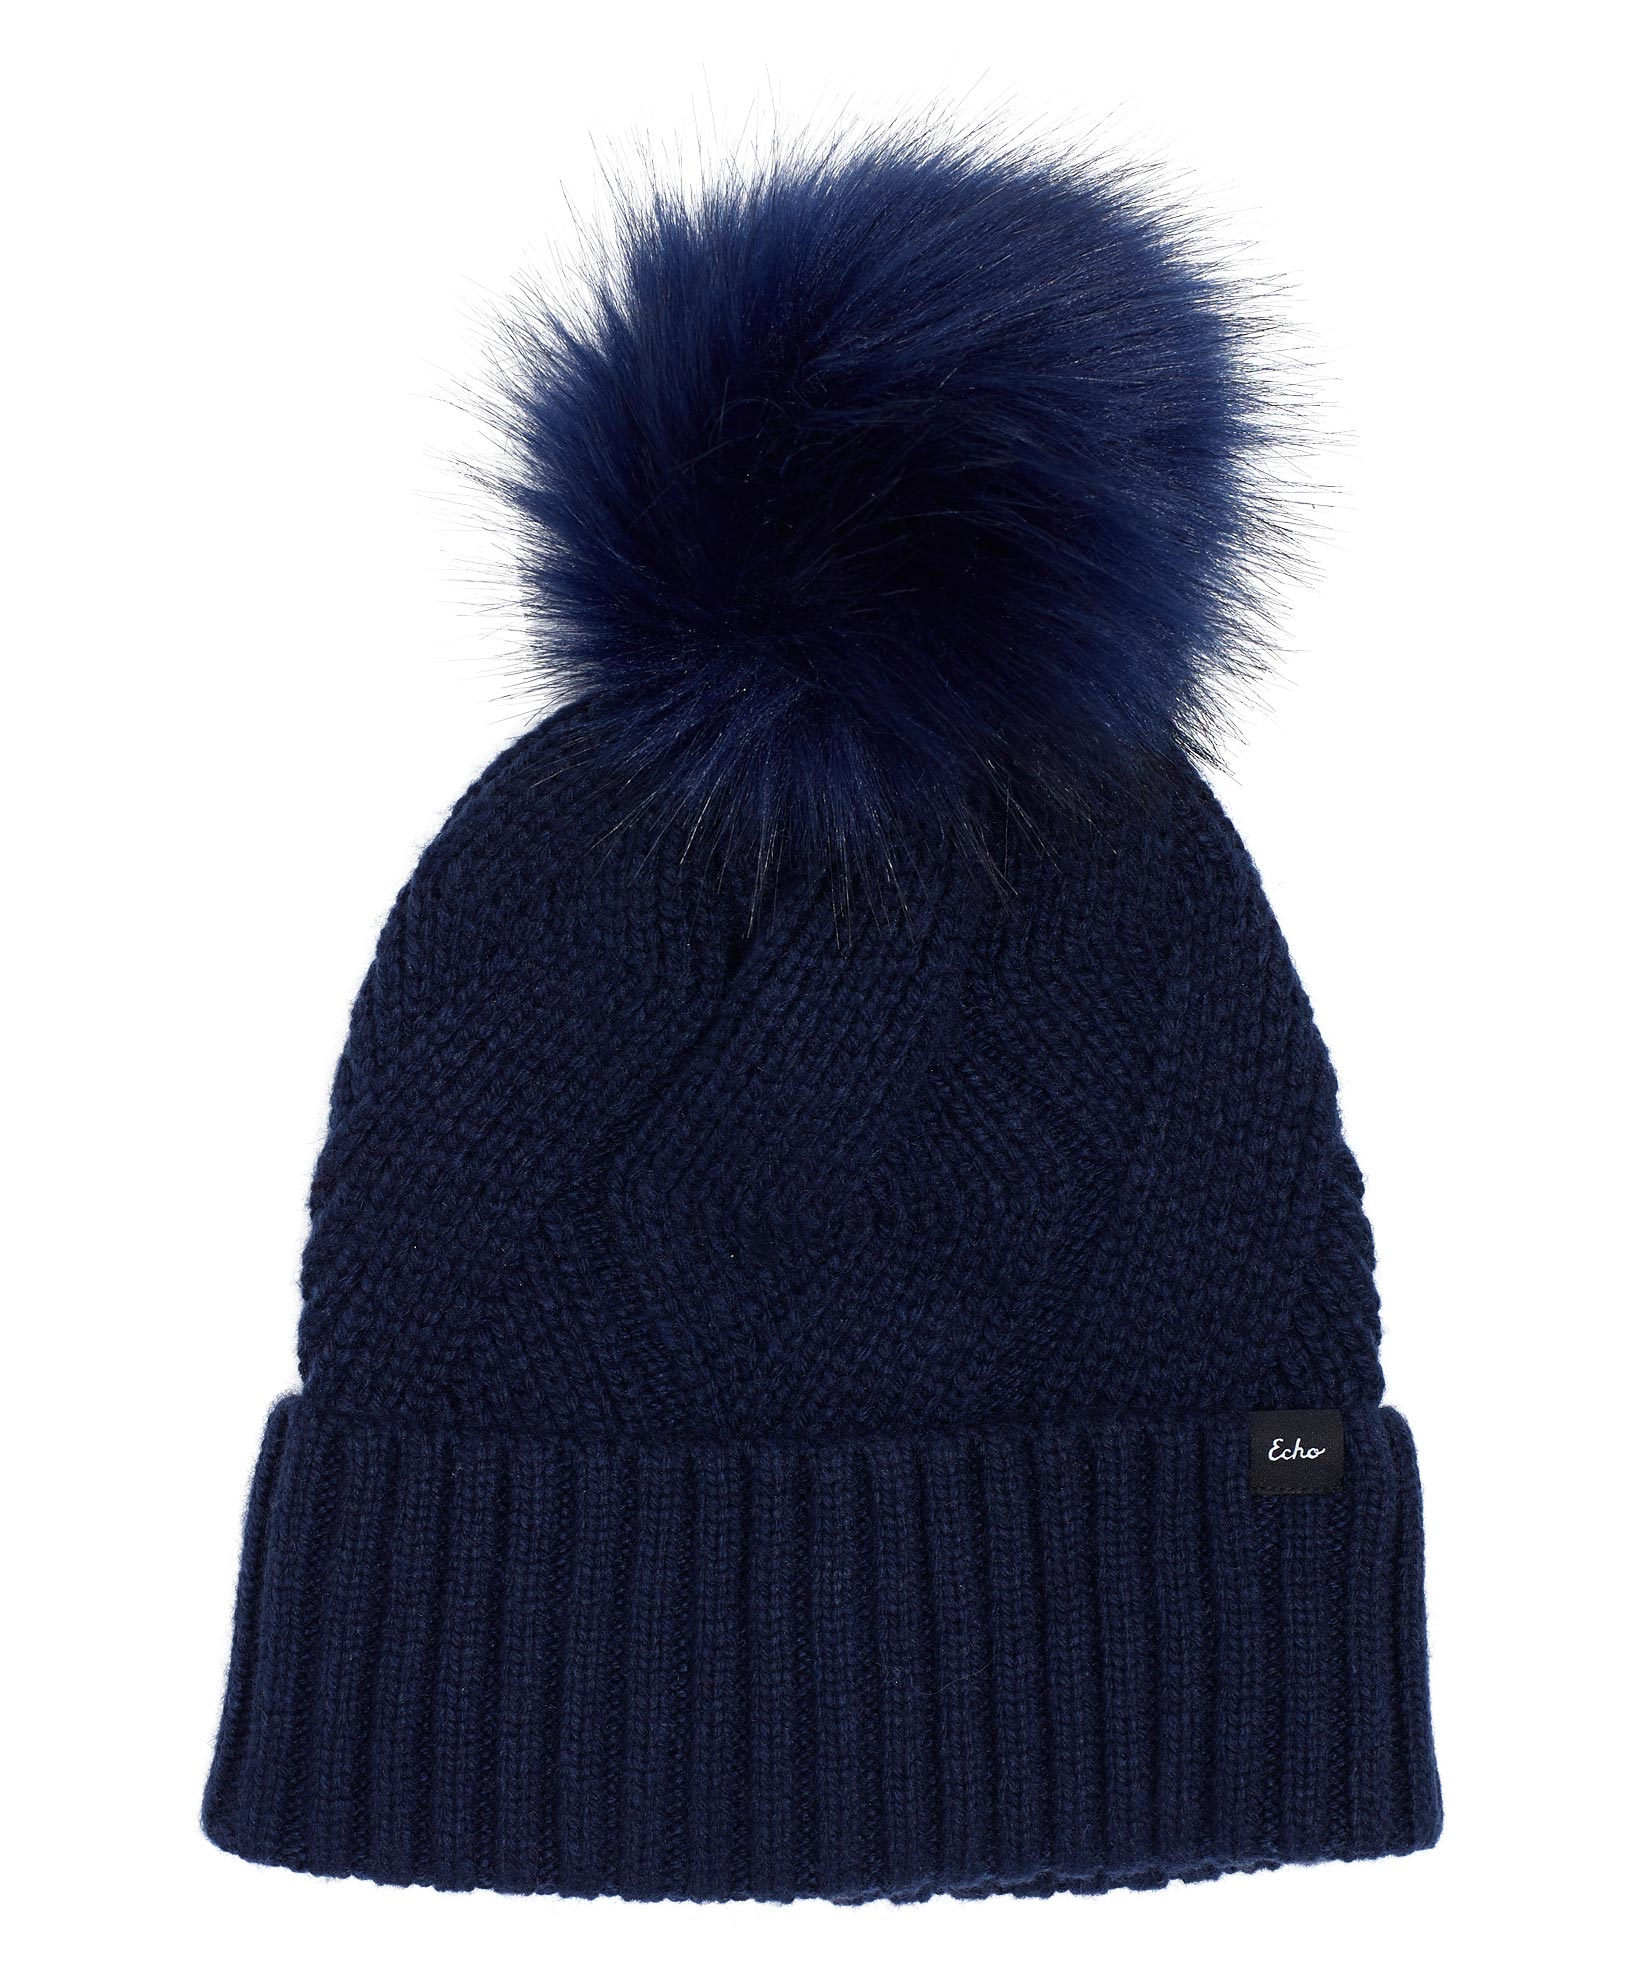 Navy - Recycled Cable Hat